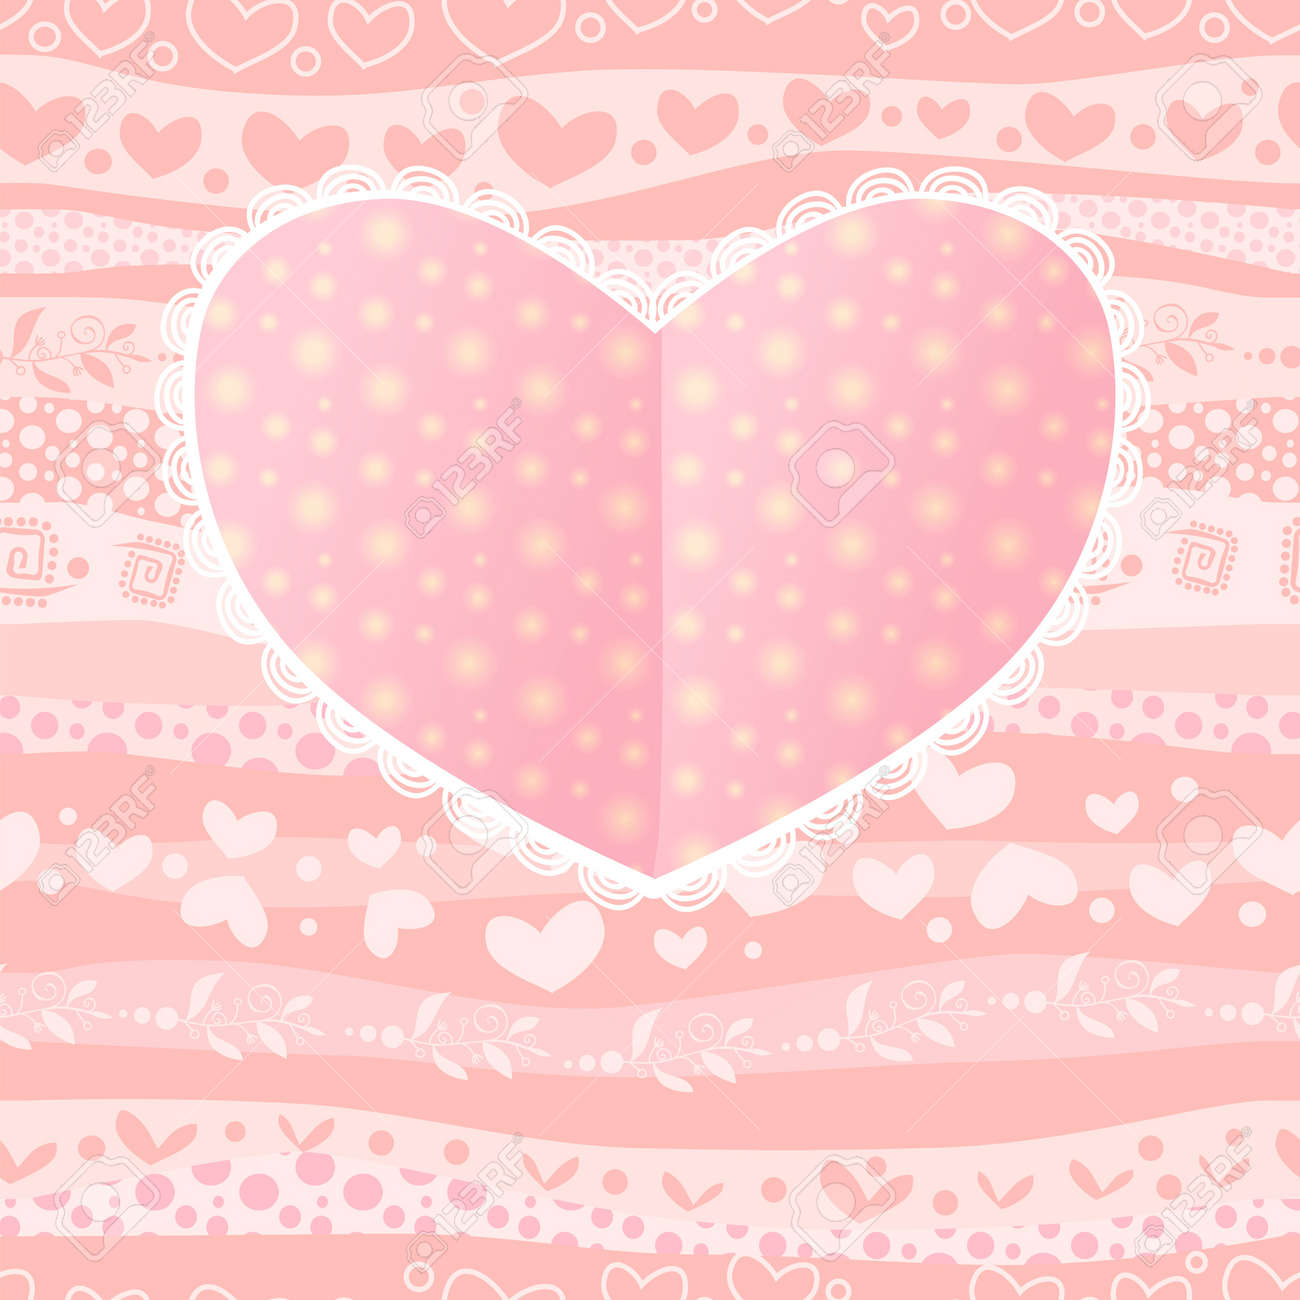 Love Valentine's Day Wedding Heart Card on Waves Seamless Background Stock Vector - 17294026